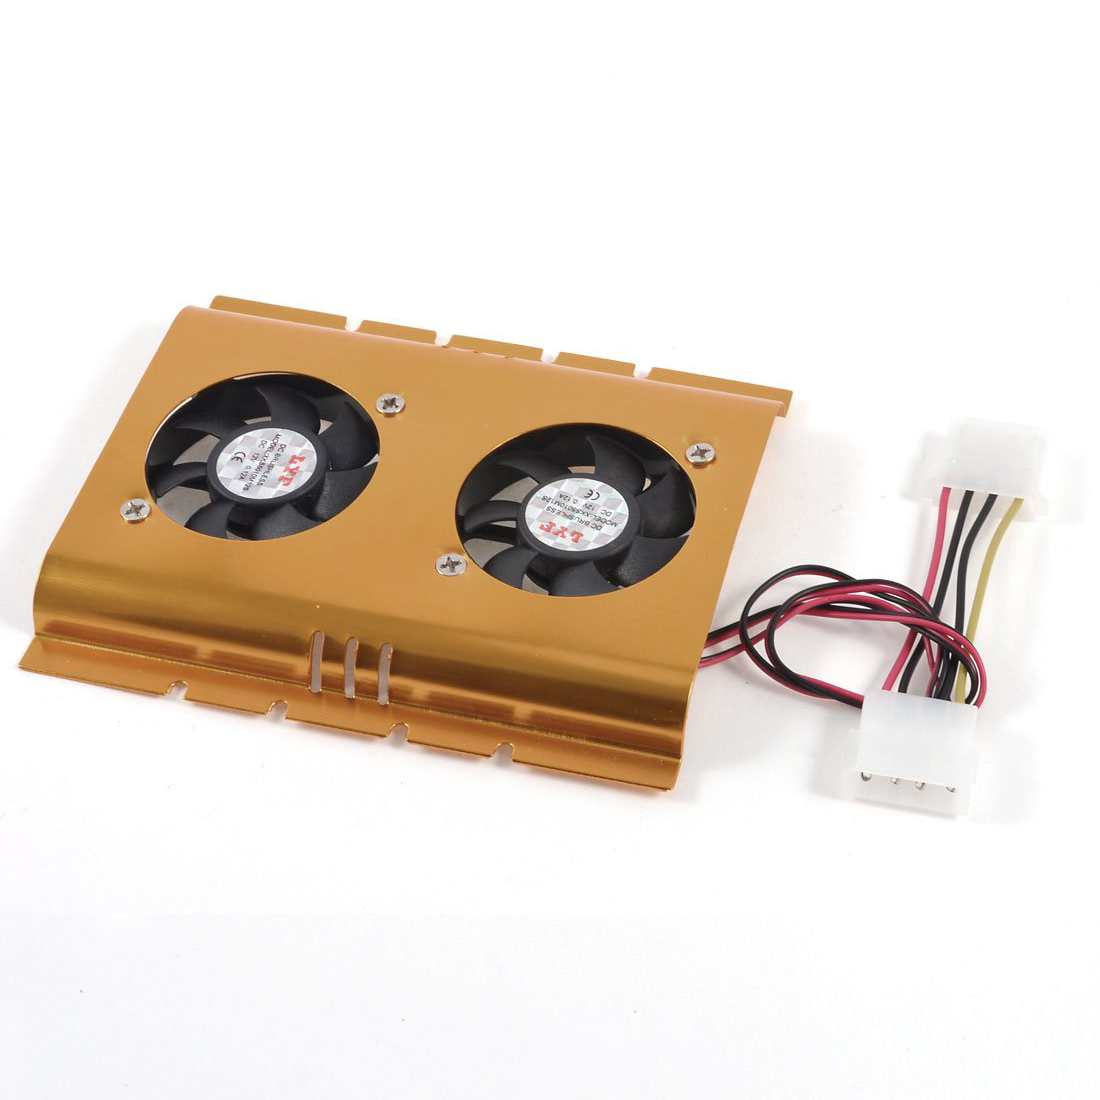 PROMOTION! 3.5 Hard Disk Drive HDD Dual Fan Cooling Cooler Gold Tone for Desktop PC 4pin mgt8012yr w20 graphics card fan vga cooler for xfx gts250 gs 250x ydf5 gts260 video card cooling